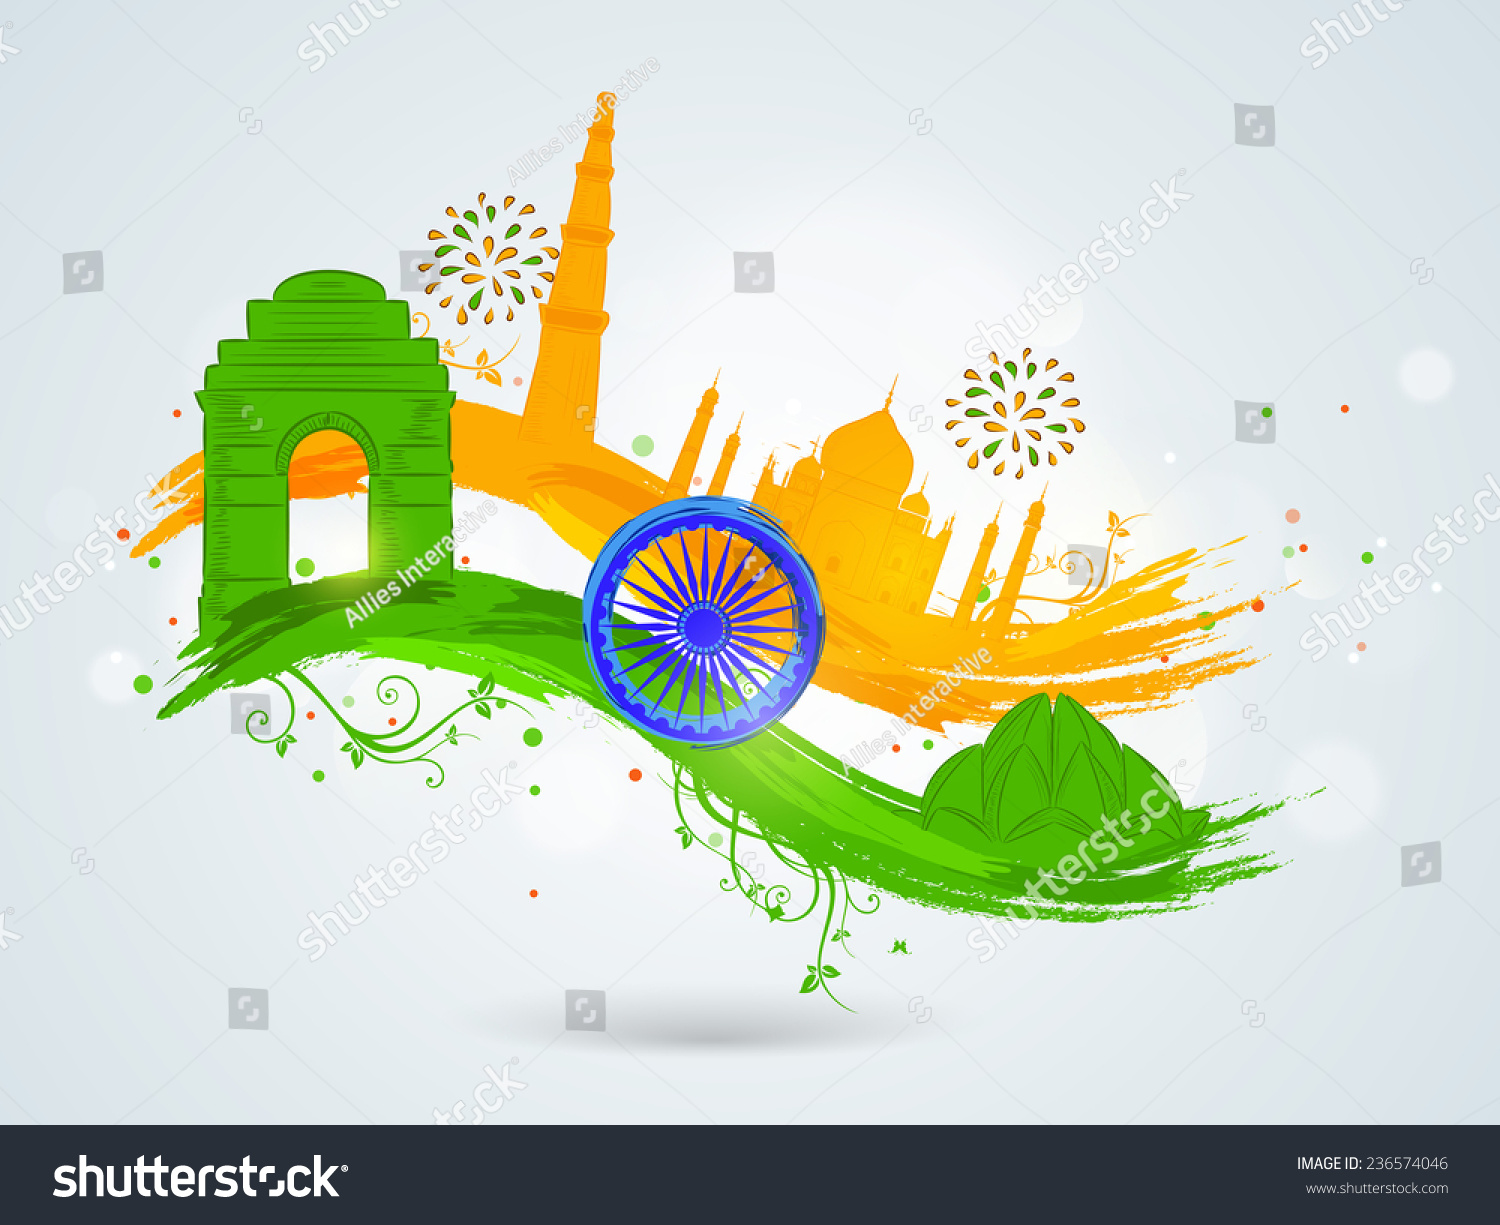 Colors website ashoka - Famous Indian Monuments With Ashoka Wheel On Floral Decorated Paint Stroke In National Flag Colors For